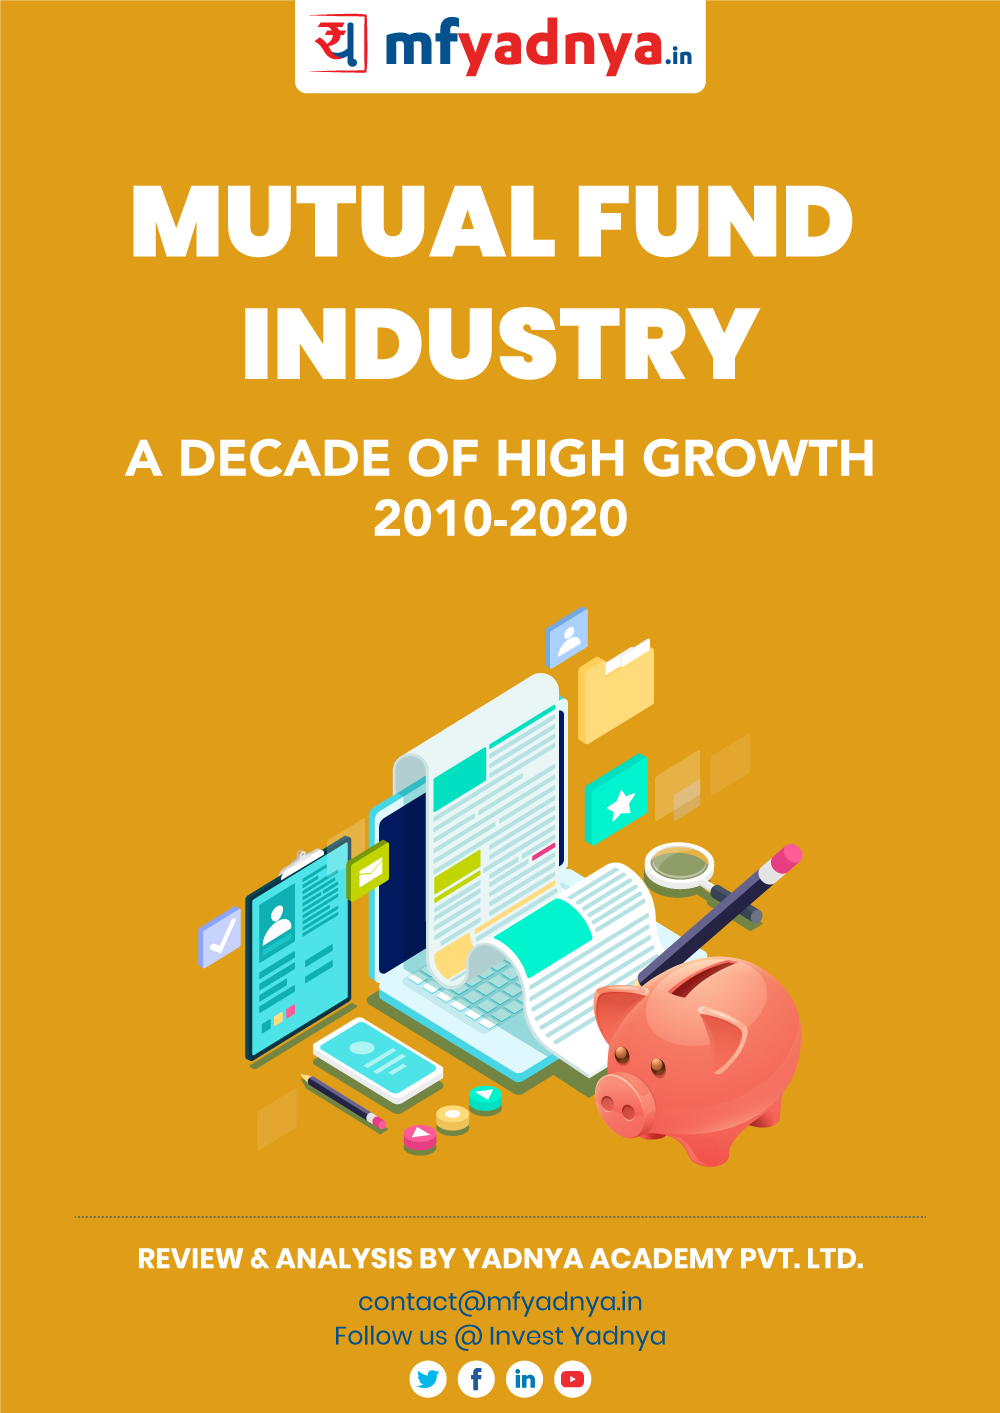 This e-book offers deep insights into the Mutual Fund Industry. It analyses the Mutual Fund Industry growth for the last 10 years, based on various parameters. ✔ Indian Stock Market Analysis ✔ Quality Reports